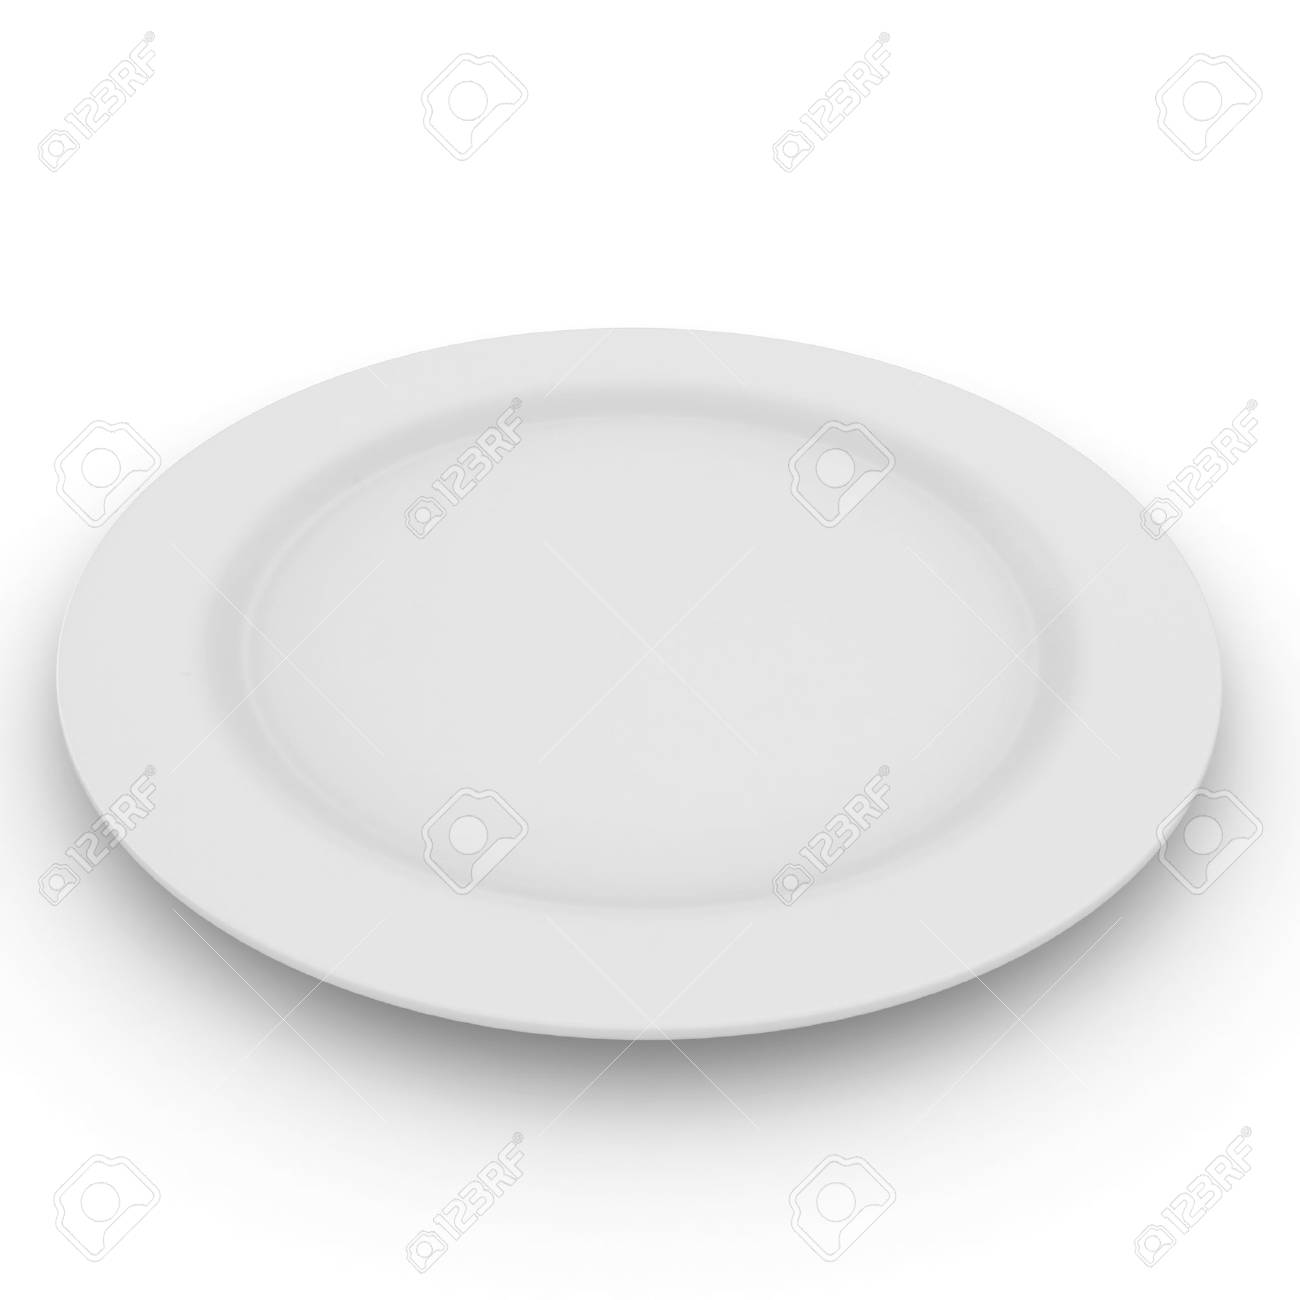 3d blank plate isolated on white Stock Photo - 8434844